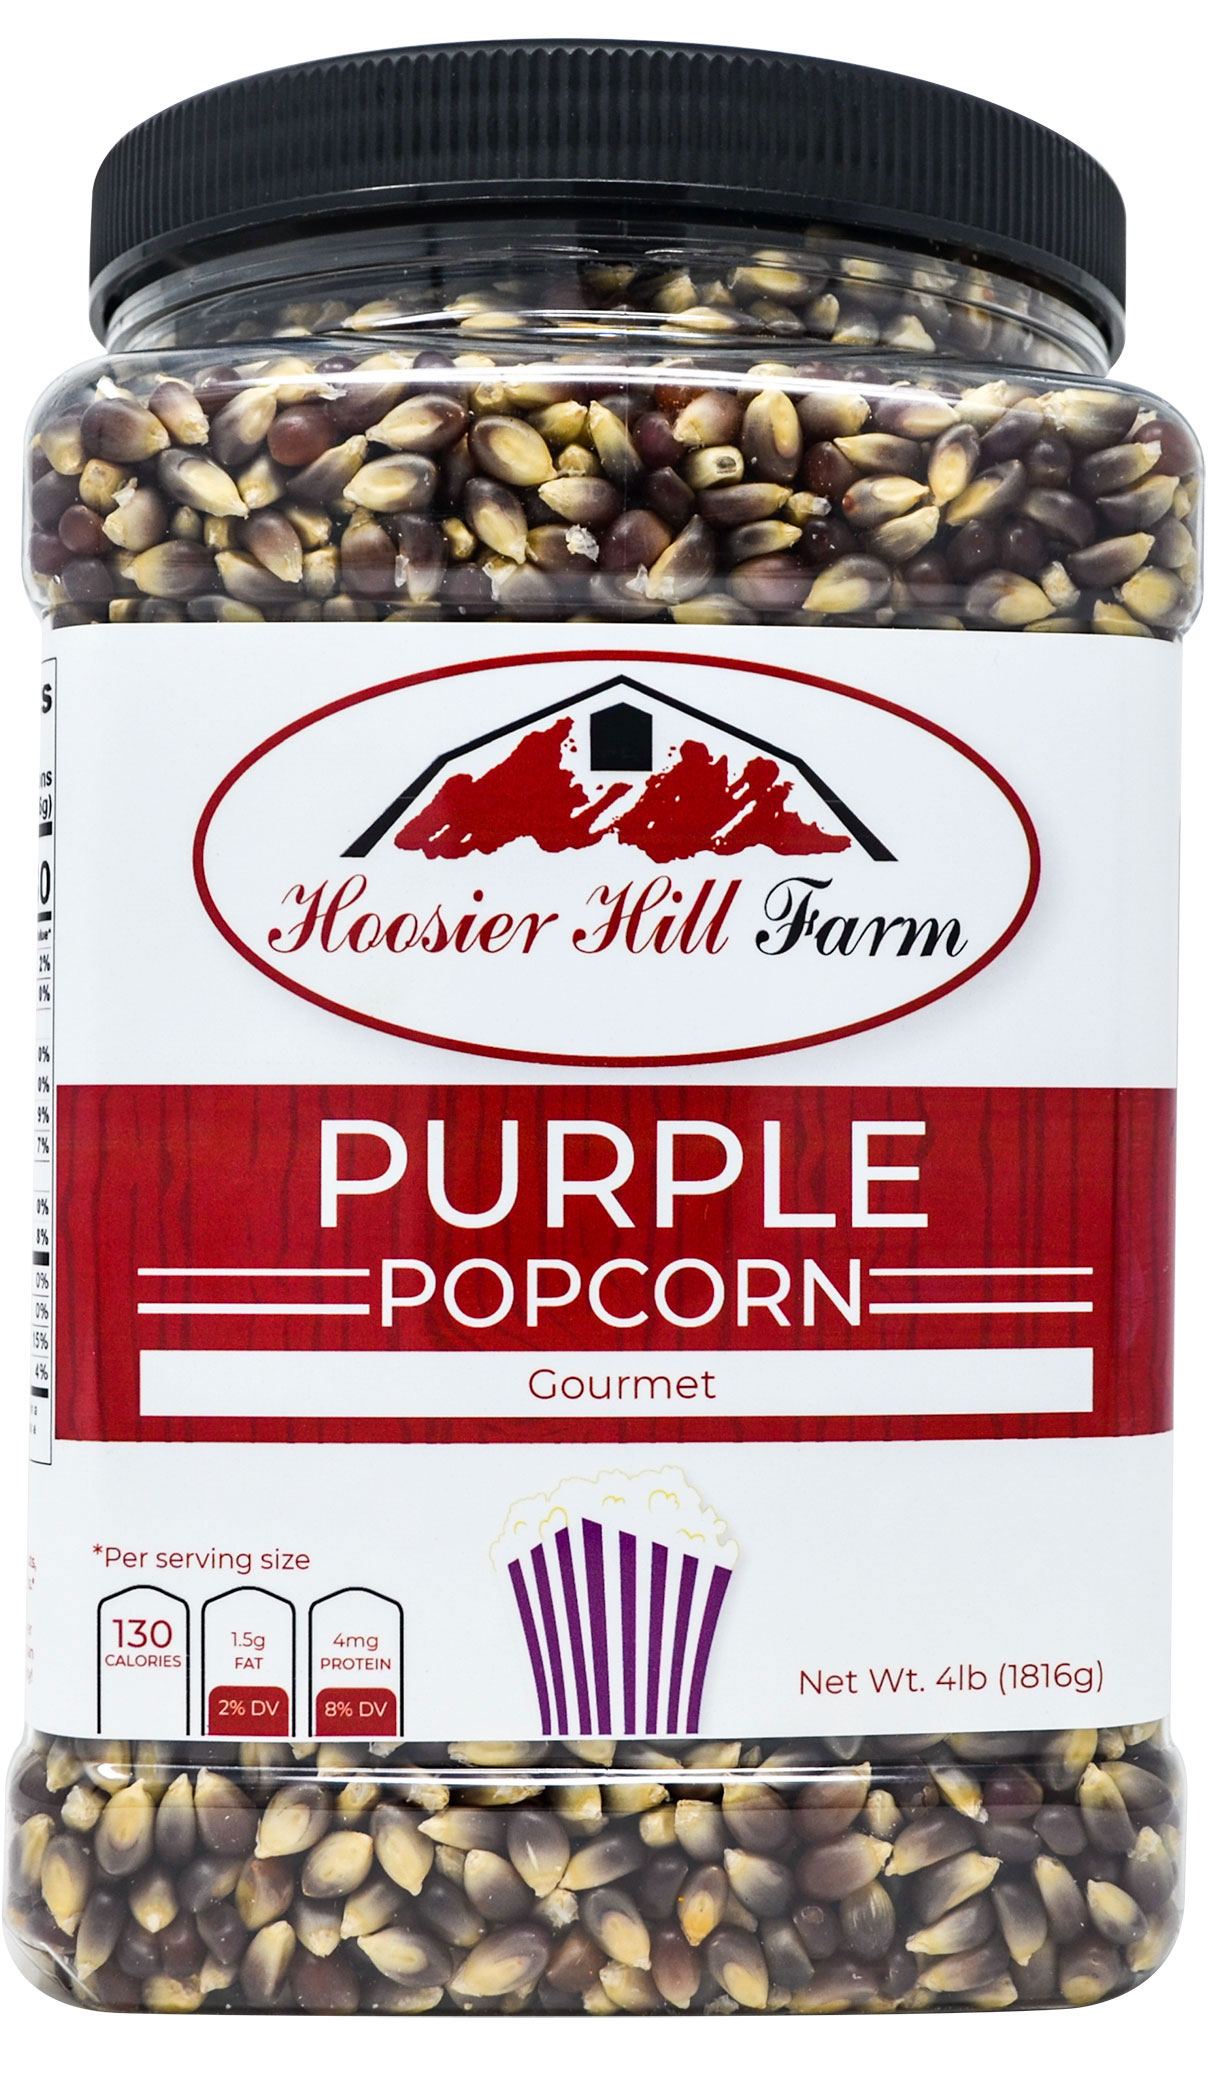 Hoosier Hill Farm Gourmet Purple, Popcorn Lovers 4 lb. Jar.